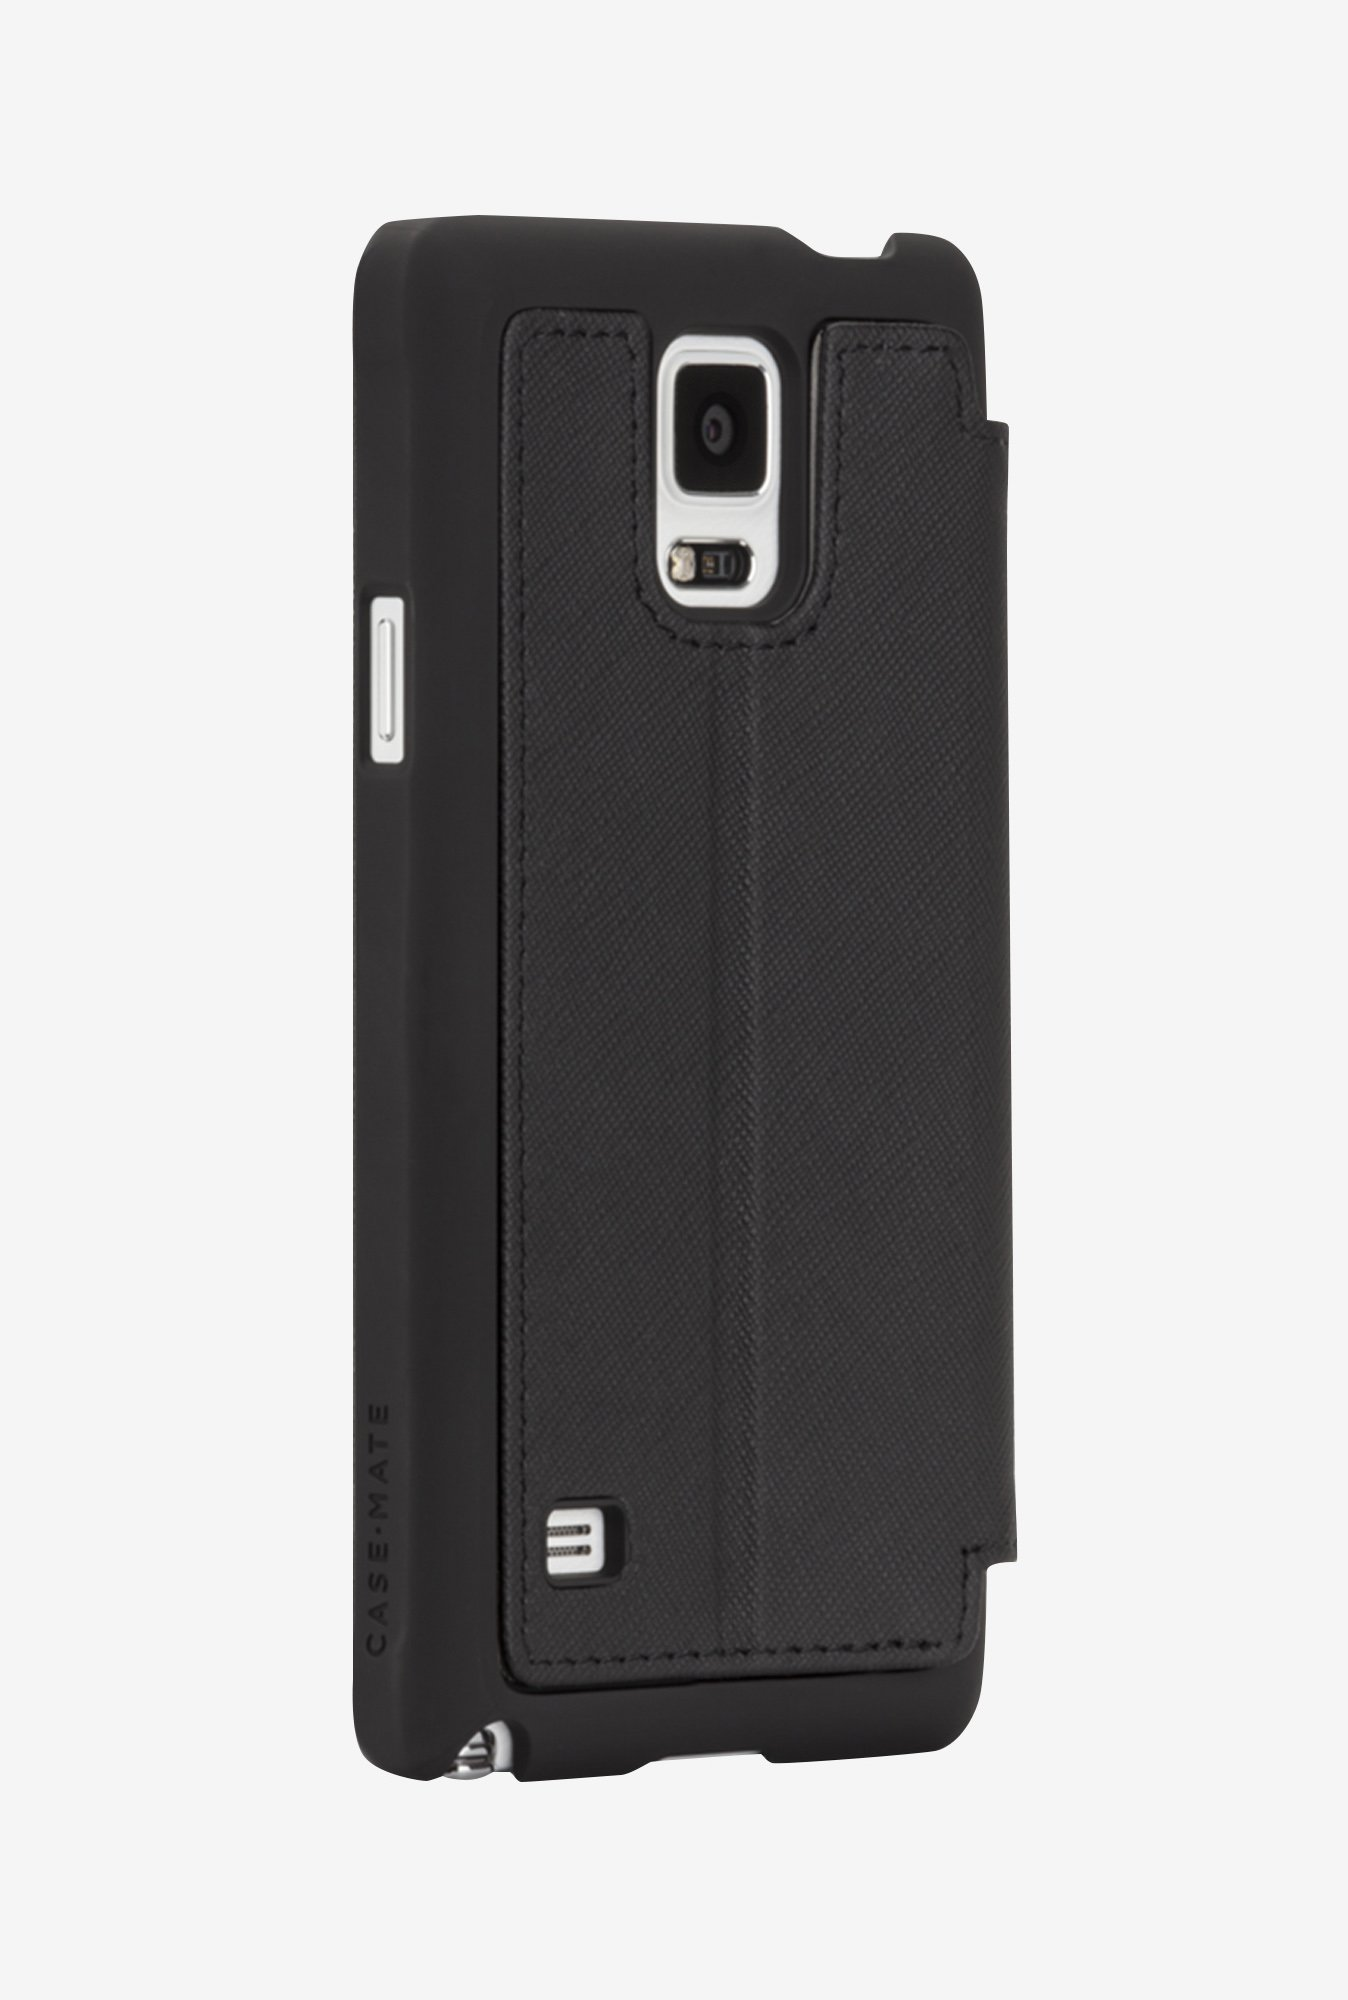 Casemate Samsung Note4 CM031816 Folio Flip Case Black